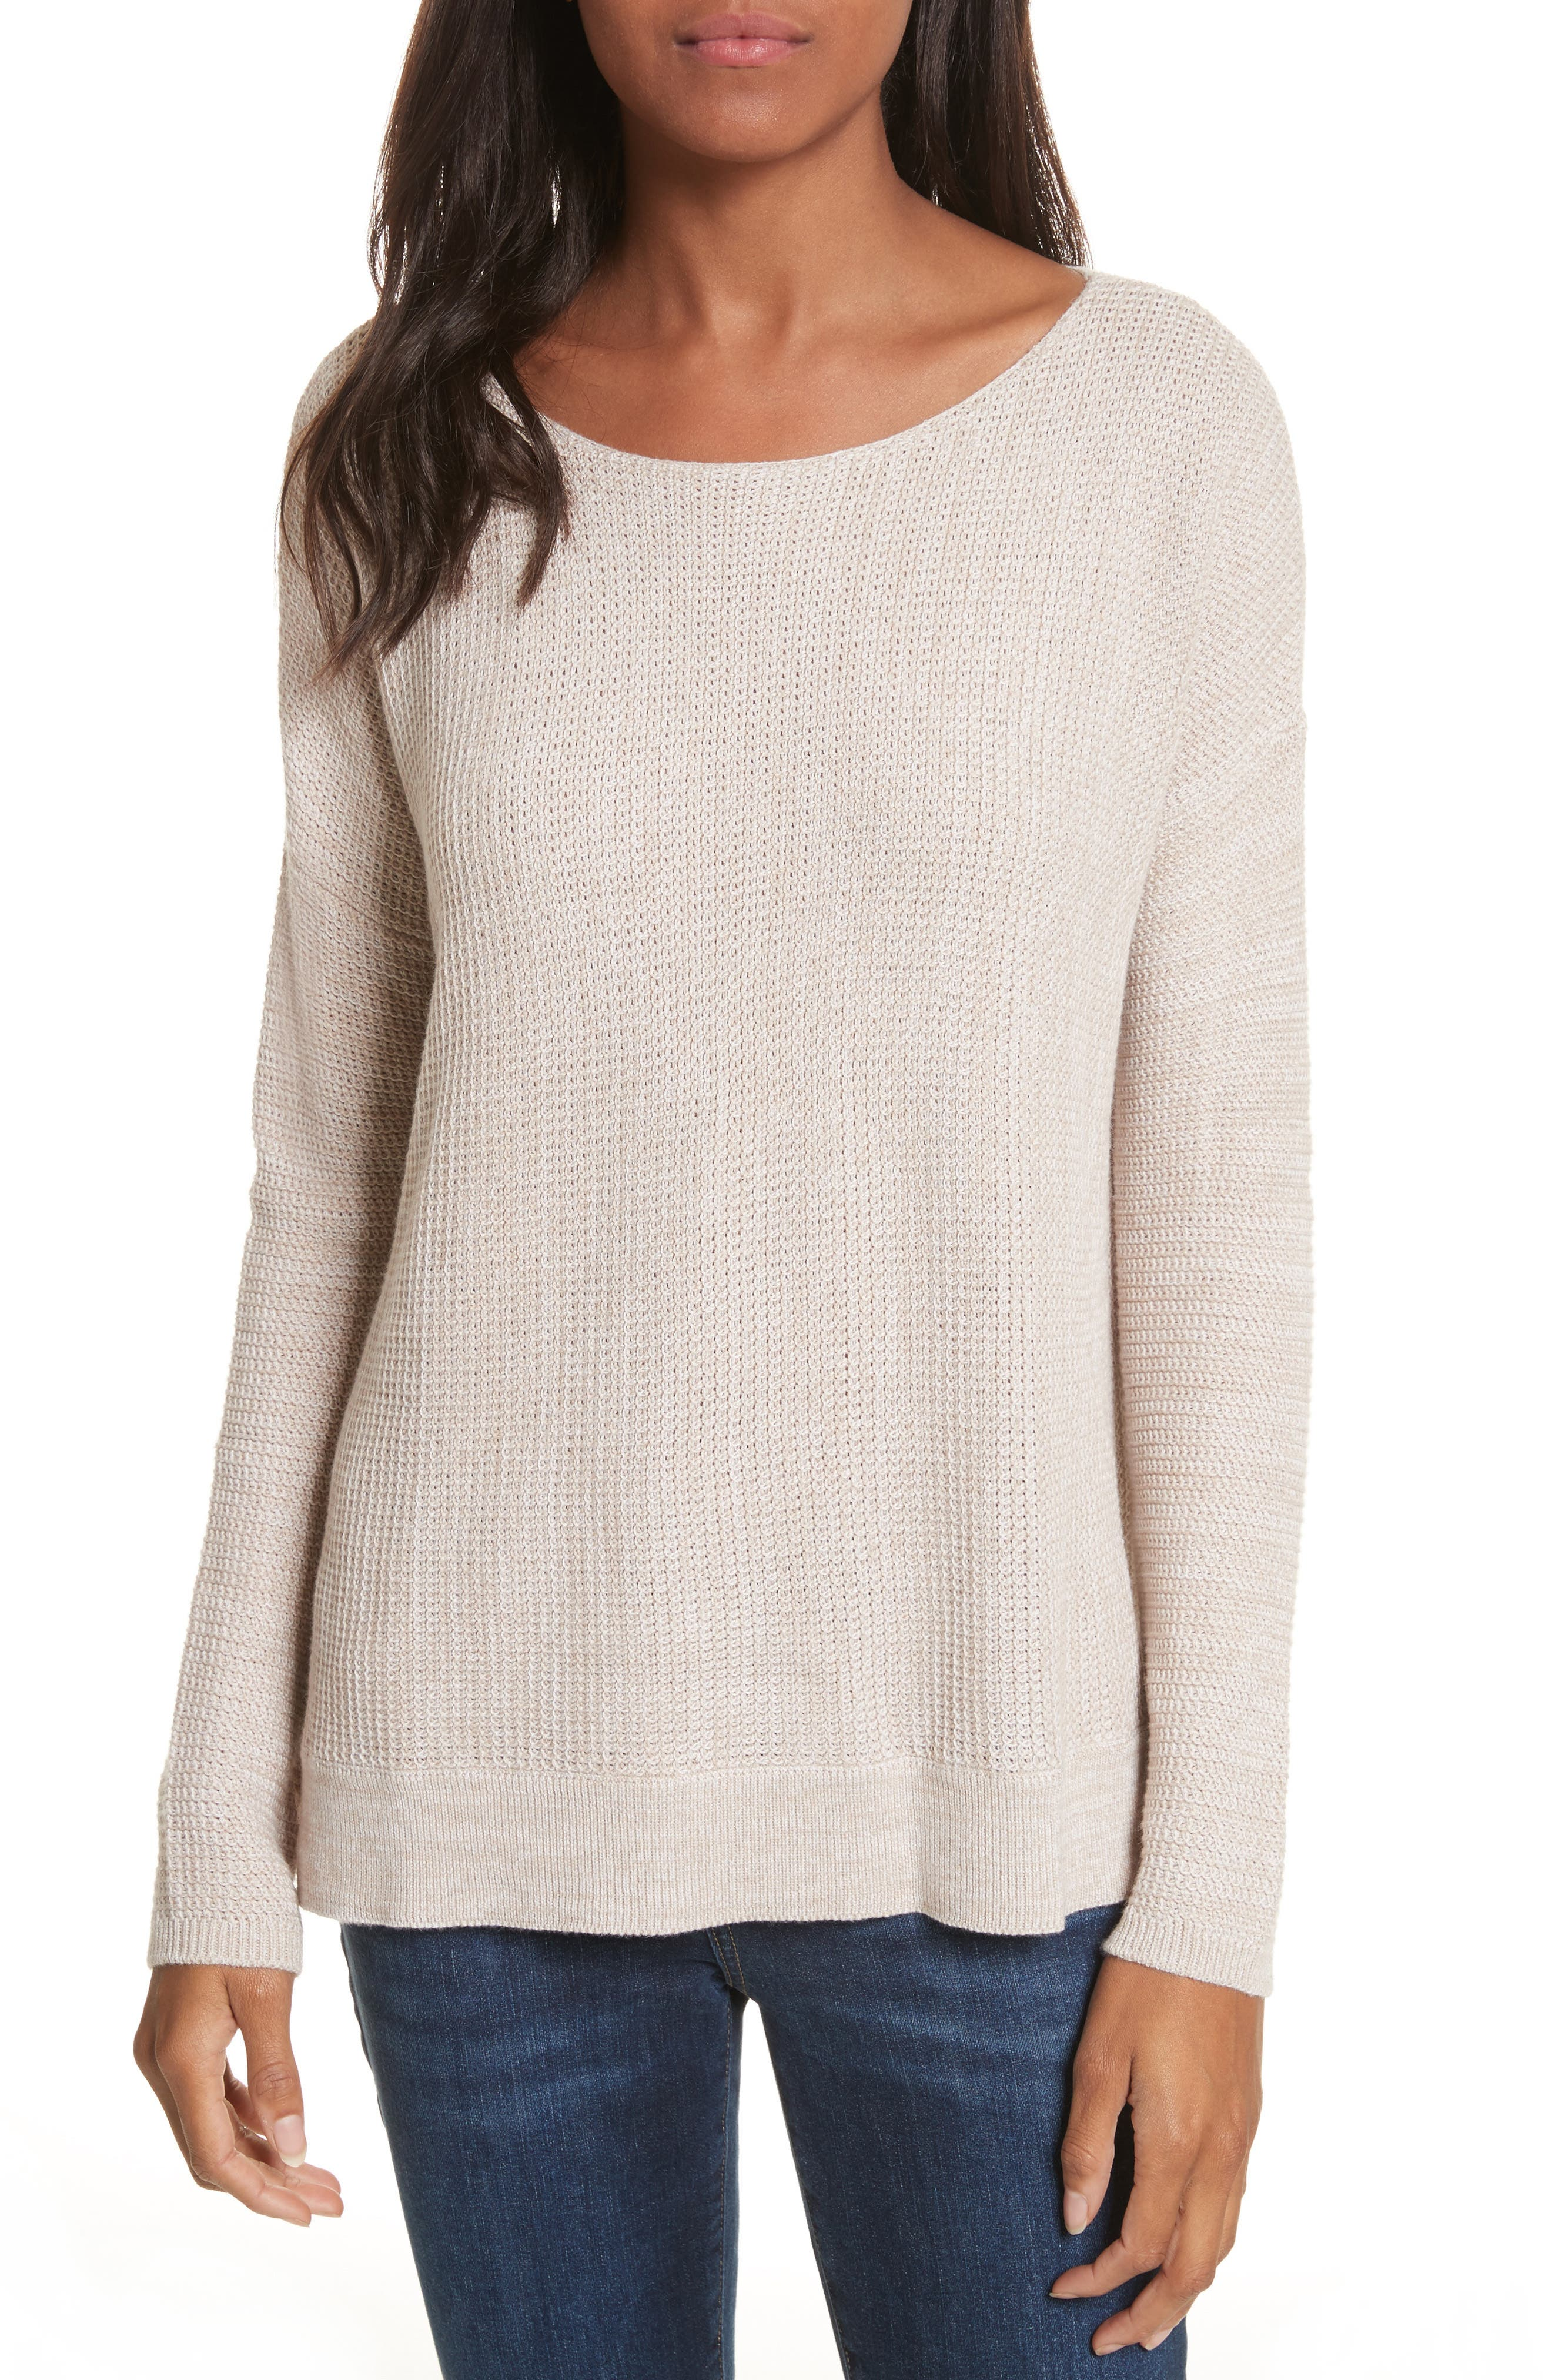 Soft Joie Kashani Pullover,                         Main,                         color, 905